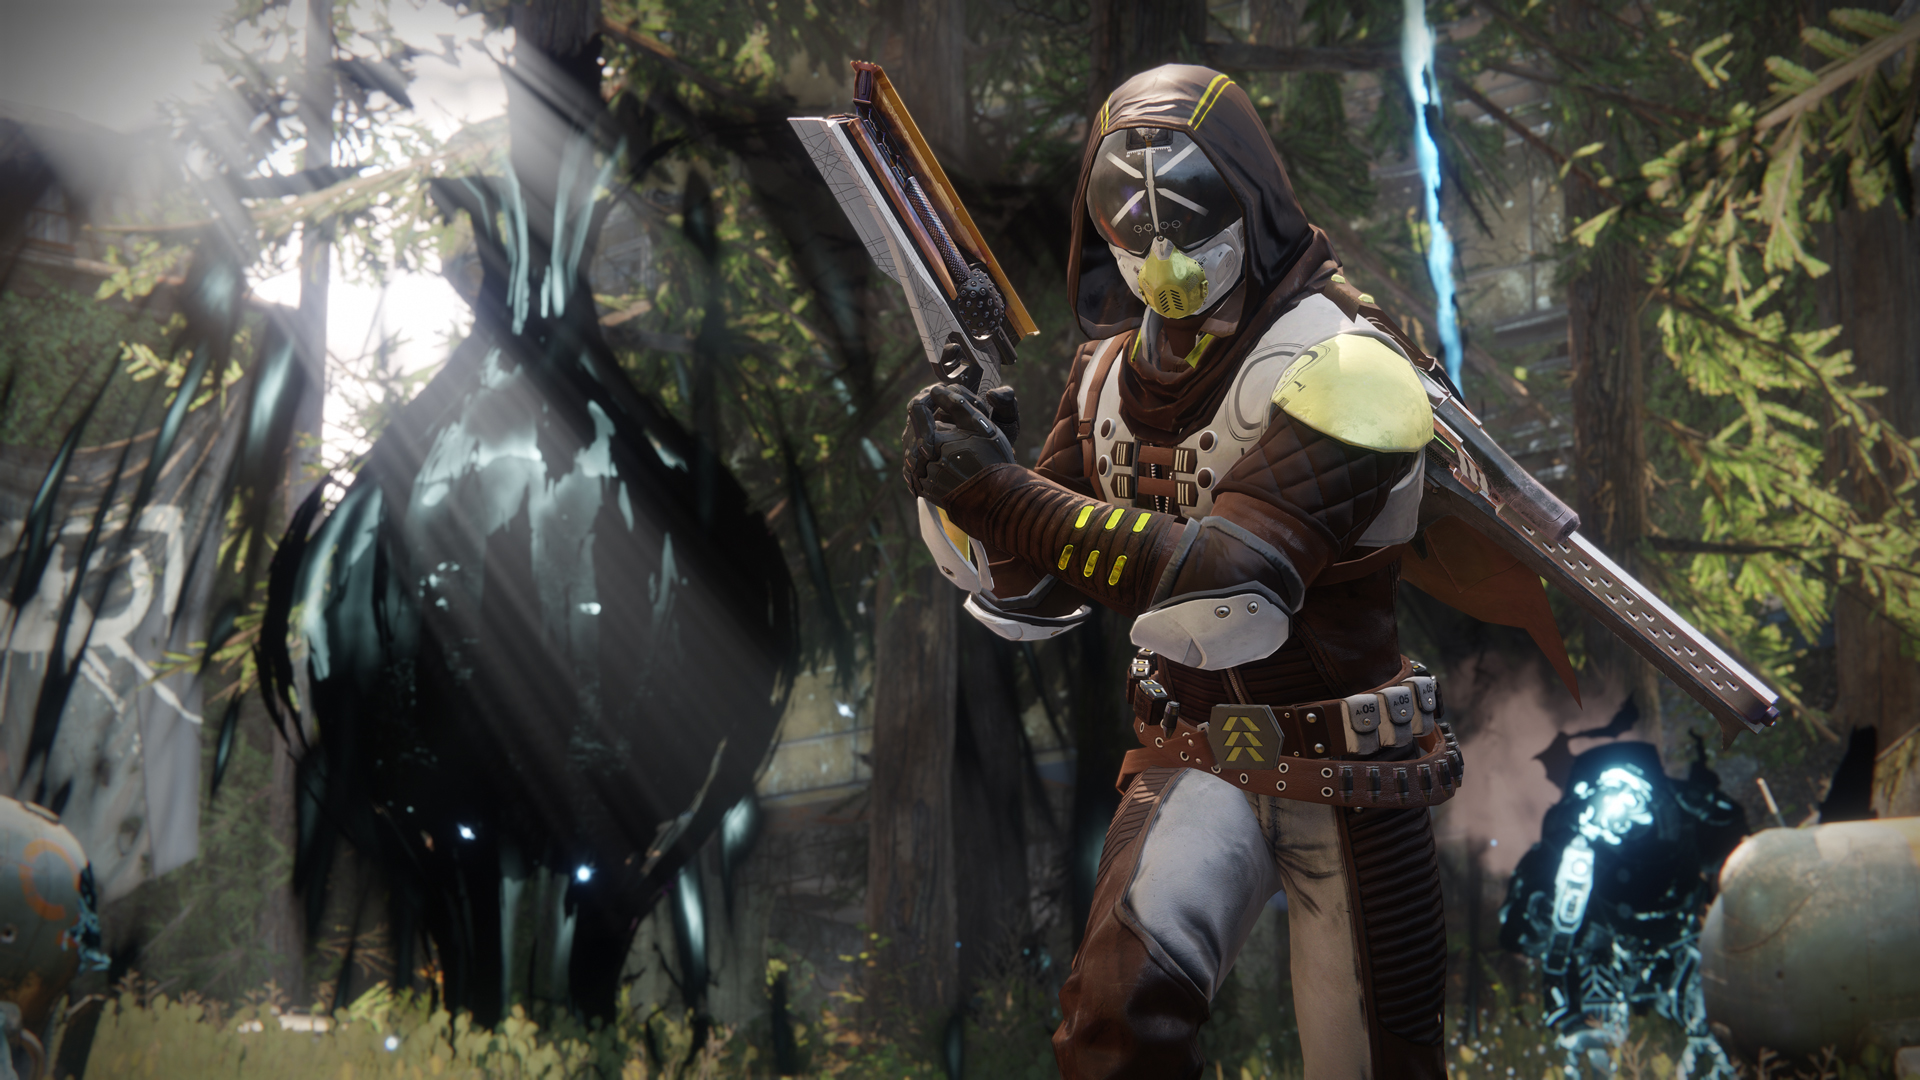 If you want access to the Destiny 2 PC beta, you'll need to pre-order the game.